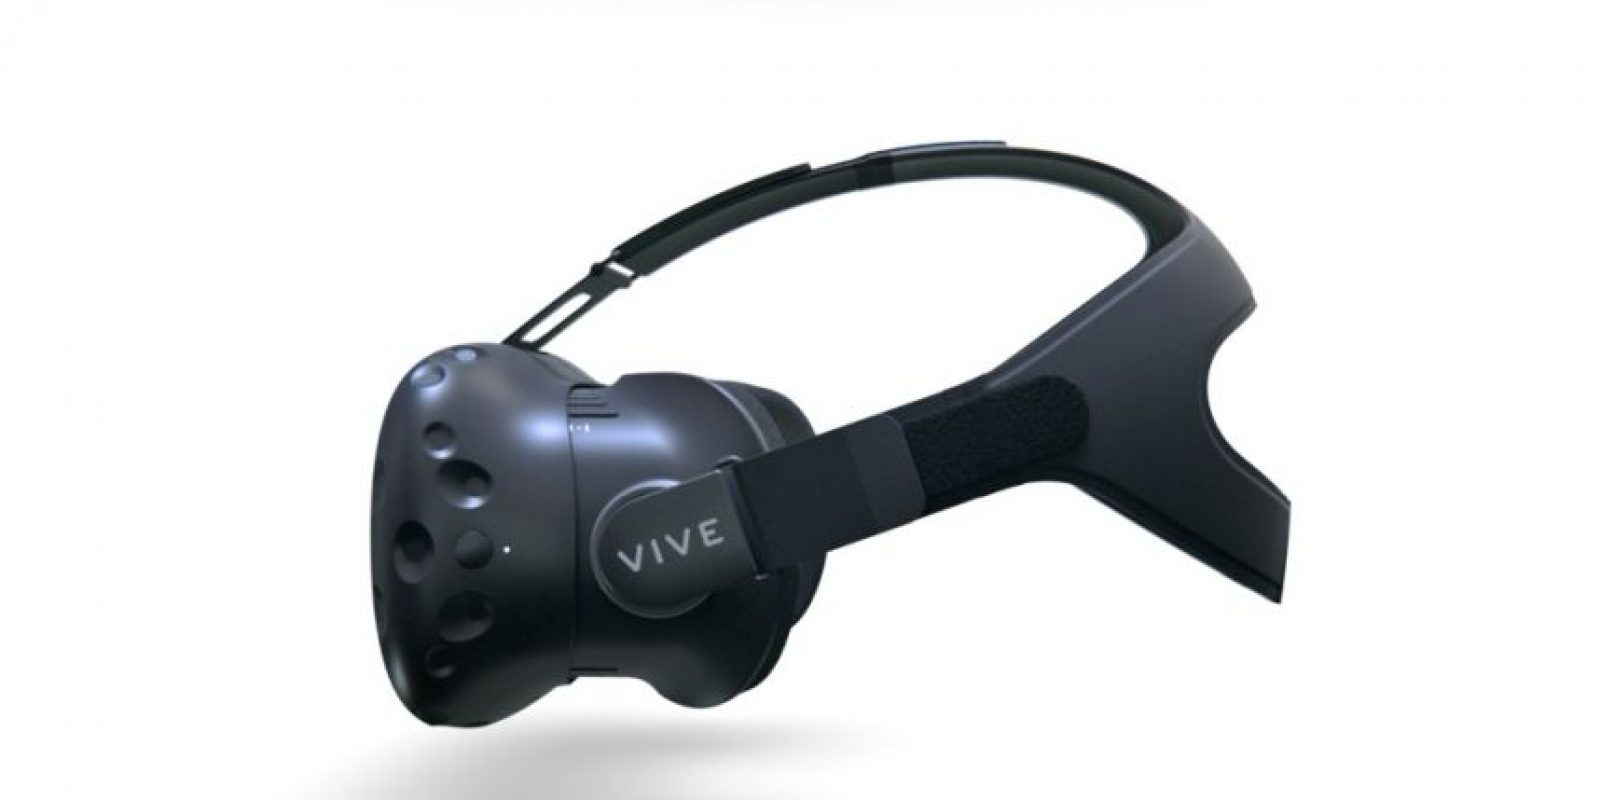 Los lentes de realidad virtual conquistaron el Mobile World Congress. Foto: HTC